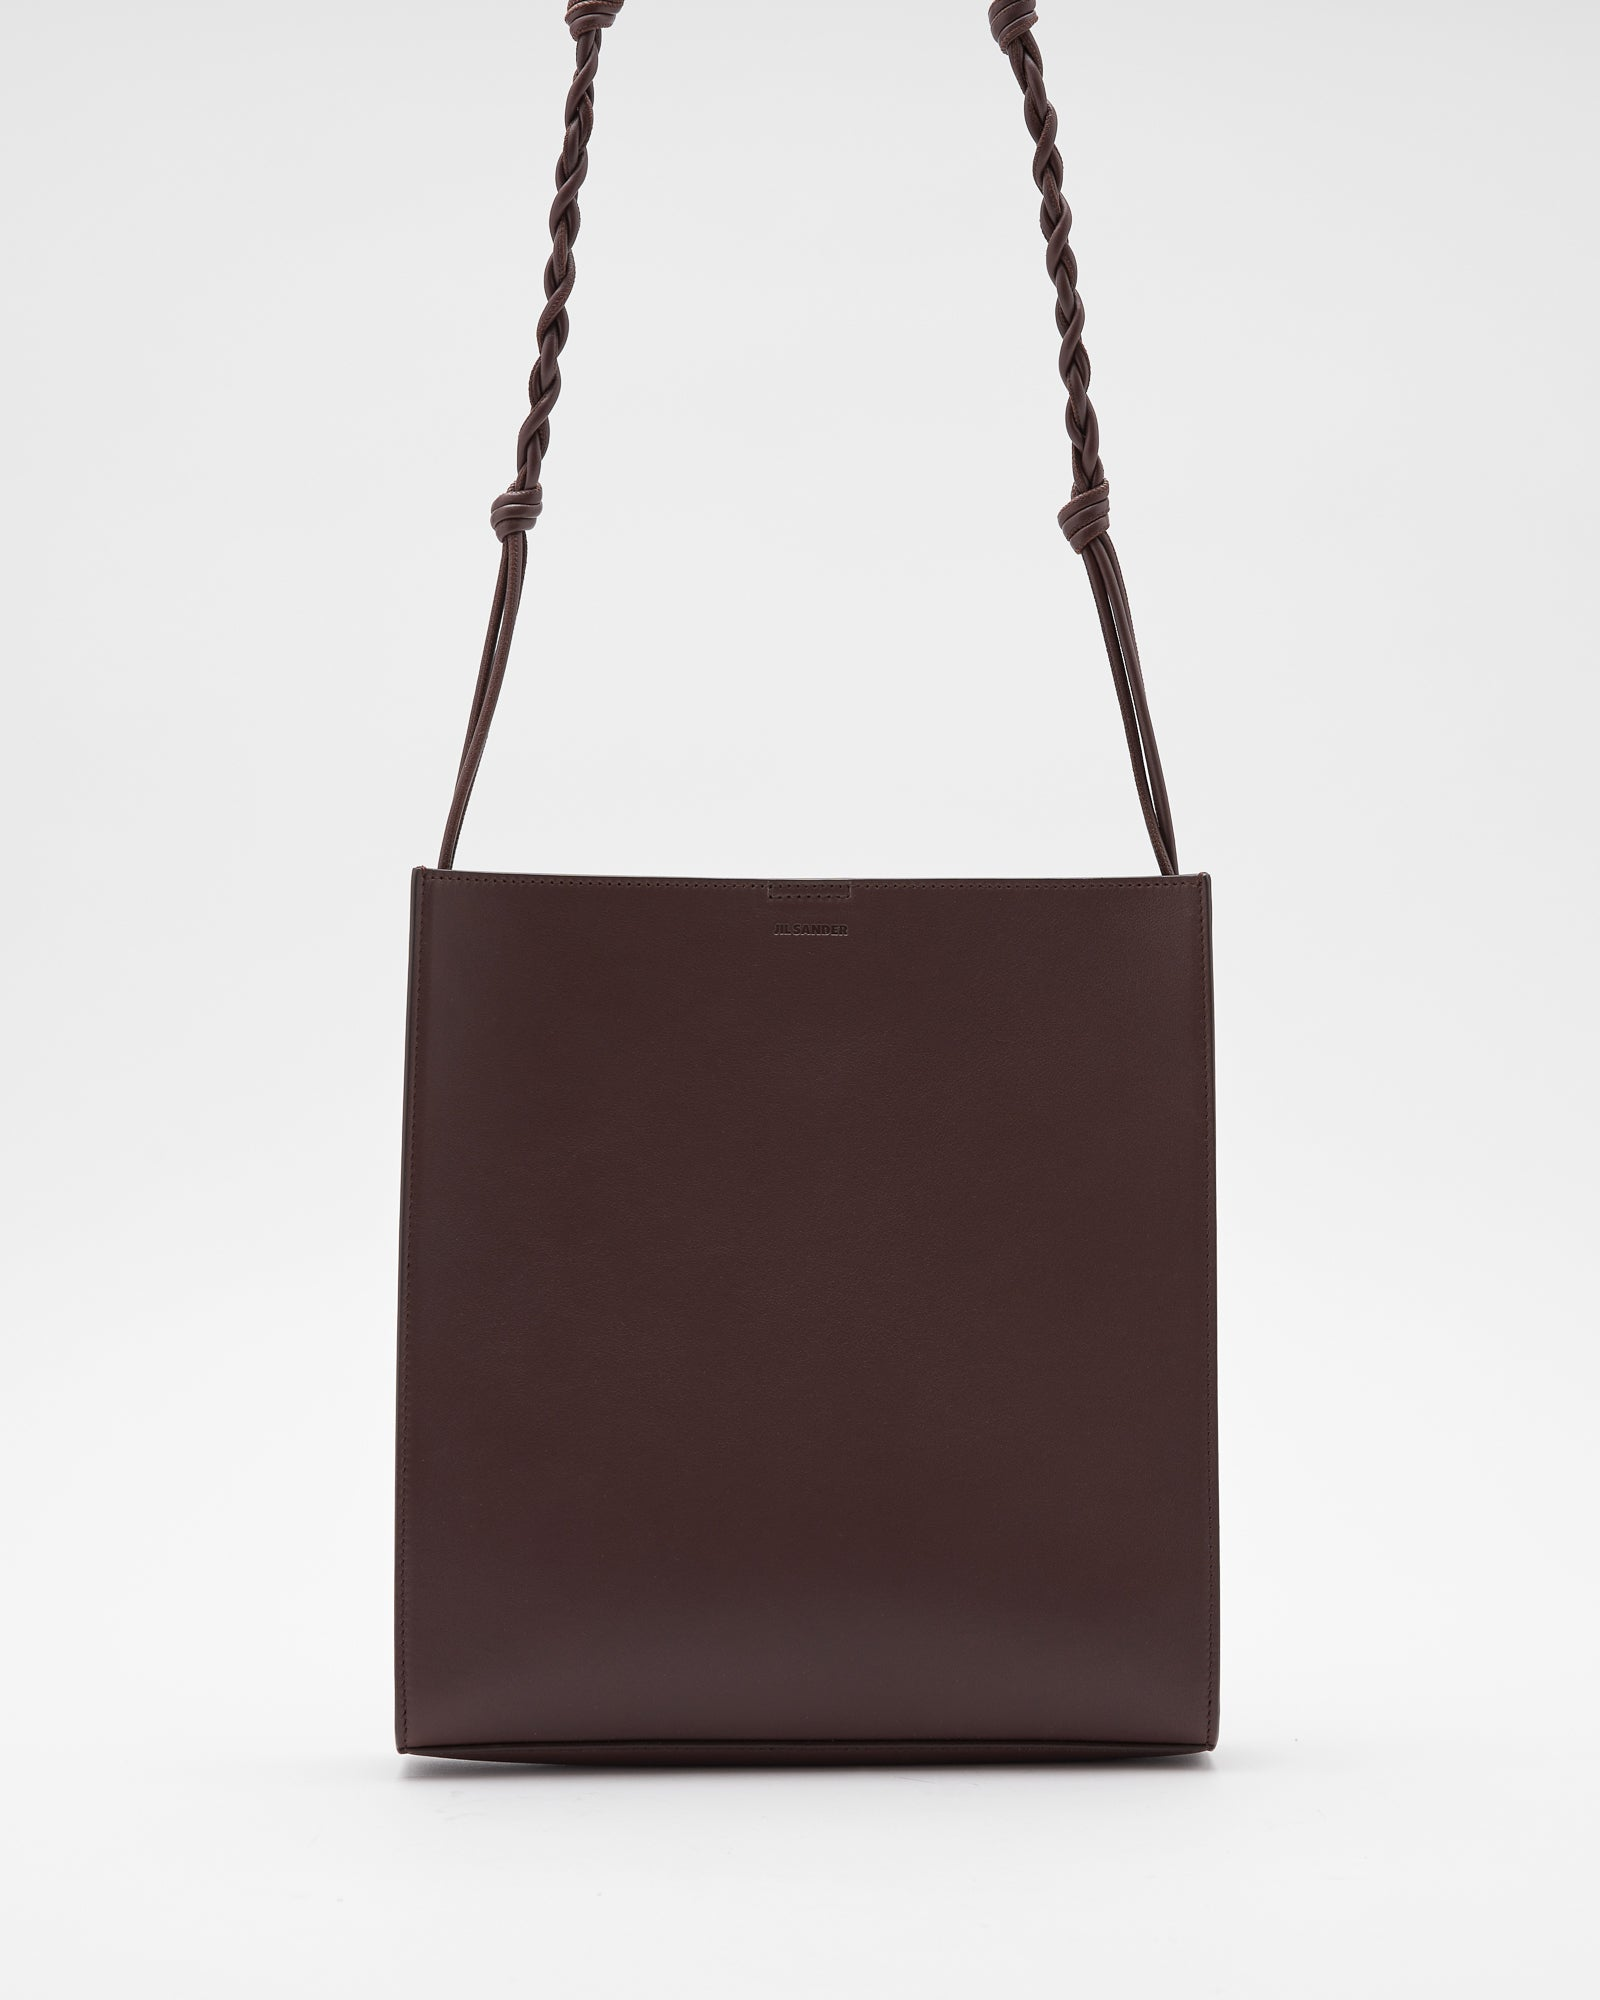 Medium Tangle Bag in Dark Brown